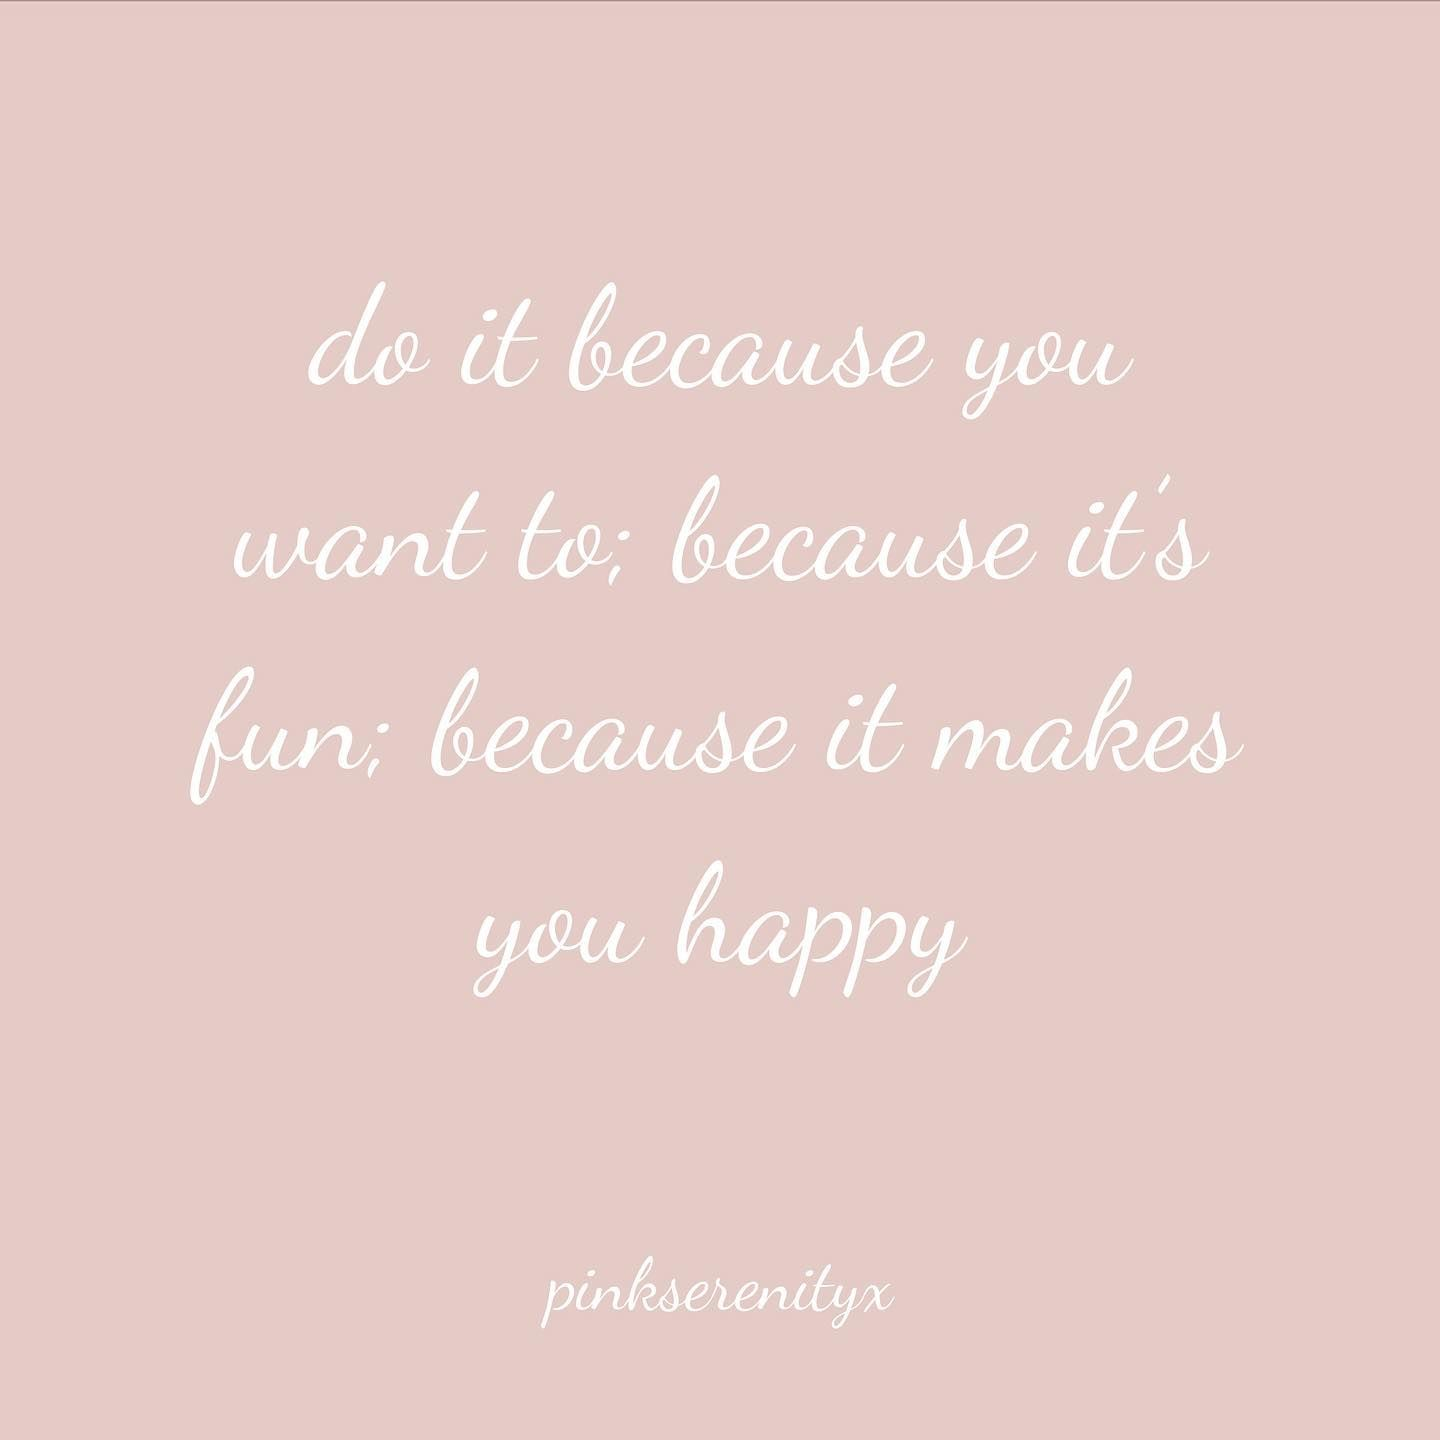 p.s...do it for you 💓x. . . . . #quoteoftheday #wordsofthewise #words #deepthoughts #quotesdaily #instaquotes #wisewords #doyou #youdoyou #quotes #lifequotes #pinkaesthetic #wordstoliveby #wordsofwisdom #reasontosmile #reasontolive #livelaughlovelife #lifestyle #lifeisbeautiful #wantthis #happyquotes #happinessquotes #happinessisachoice #happinessbegins #pinkaestheticedits #pinkserenityx